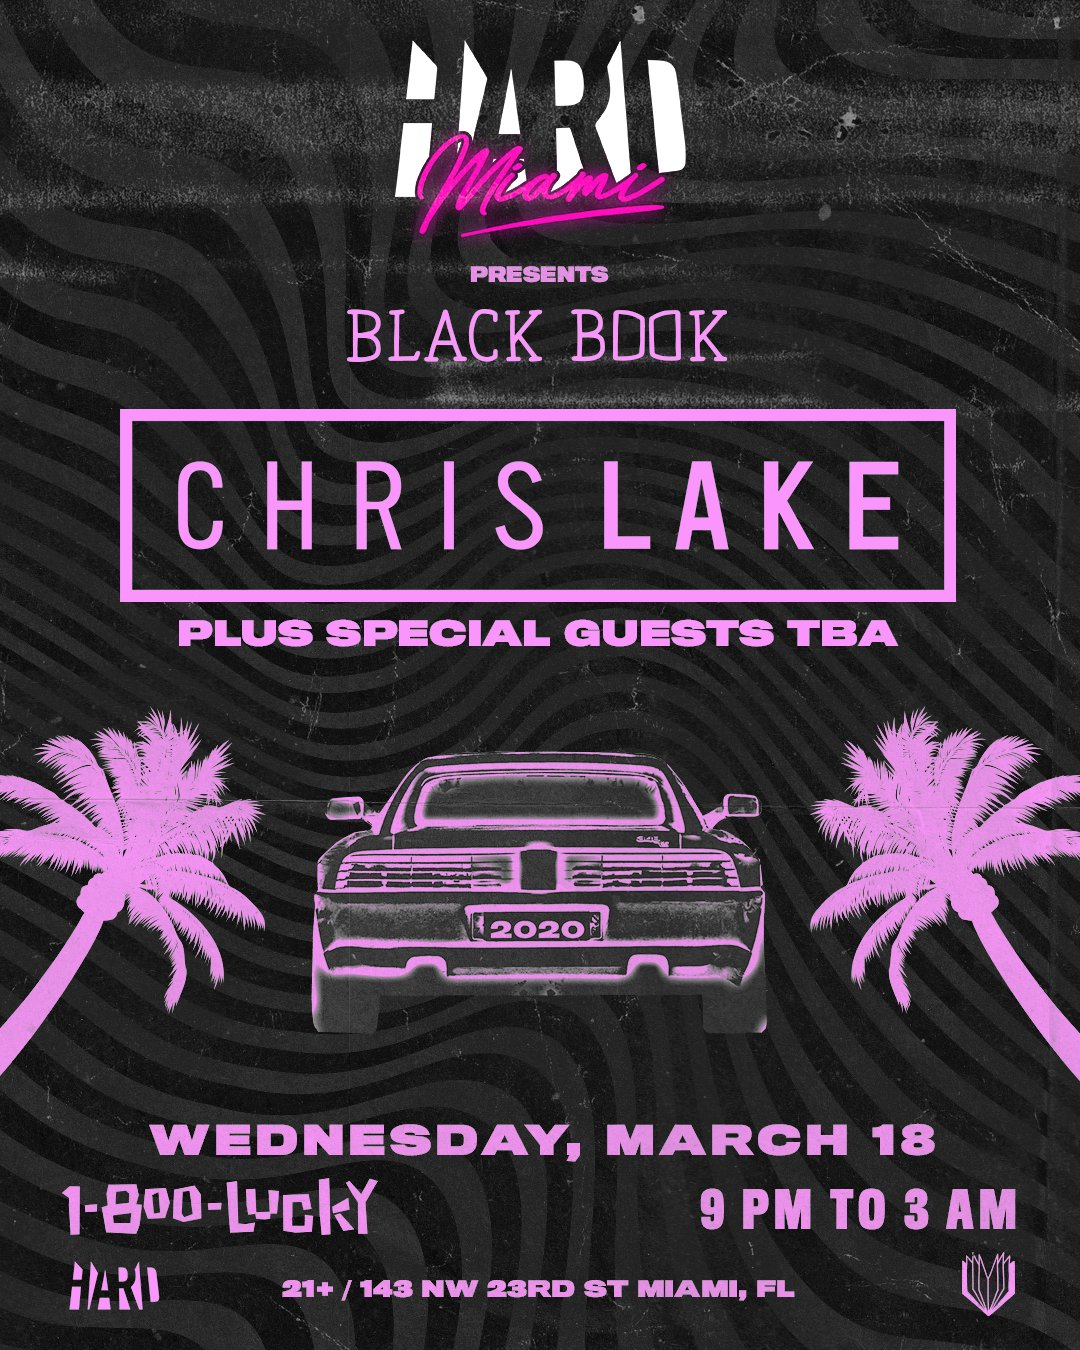 HARD Miami presents Black Book Records with Chris Lake